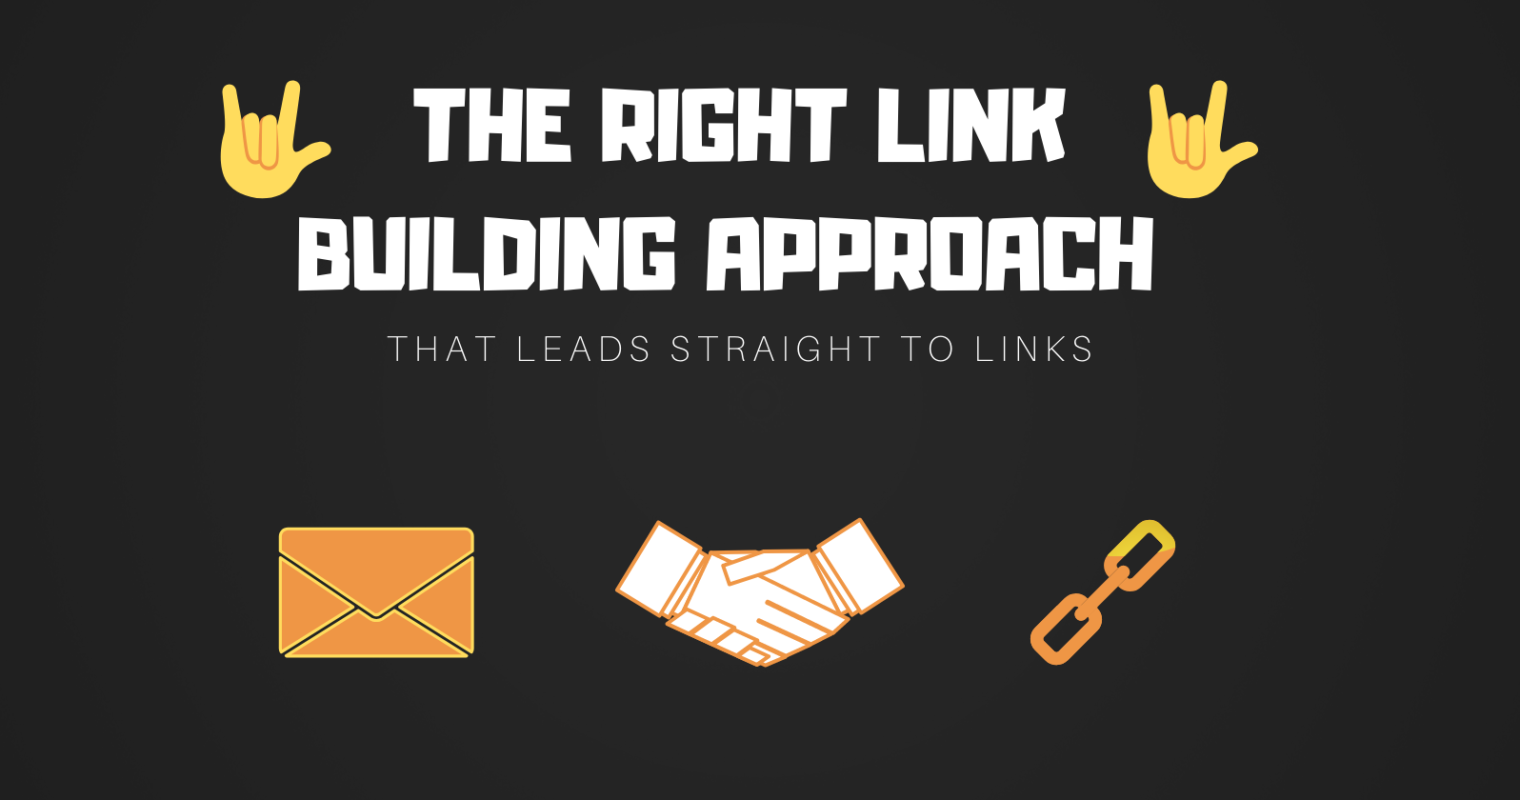 The Right Link Building Approach That Leads Straight to Links